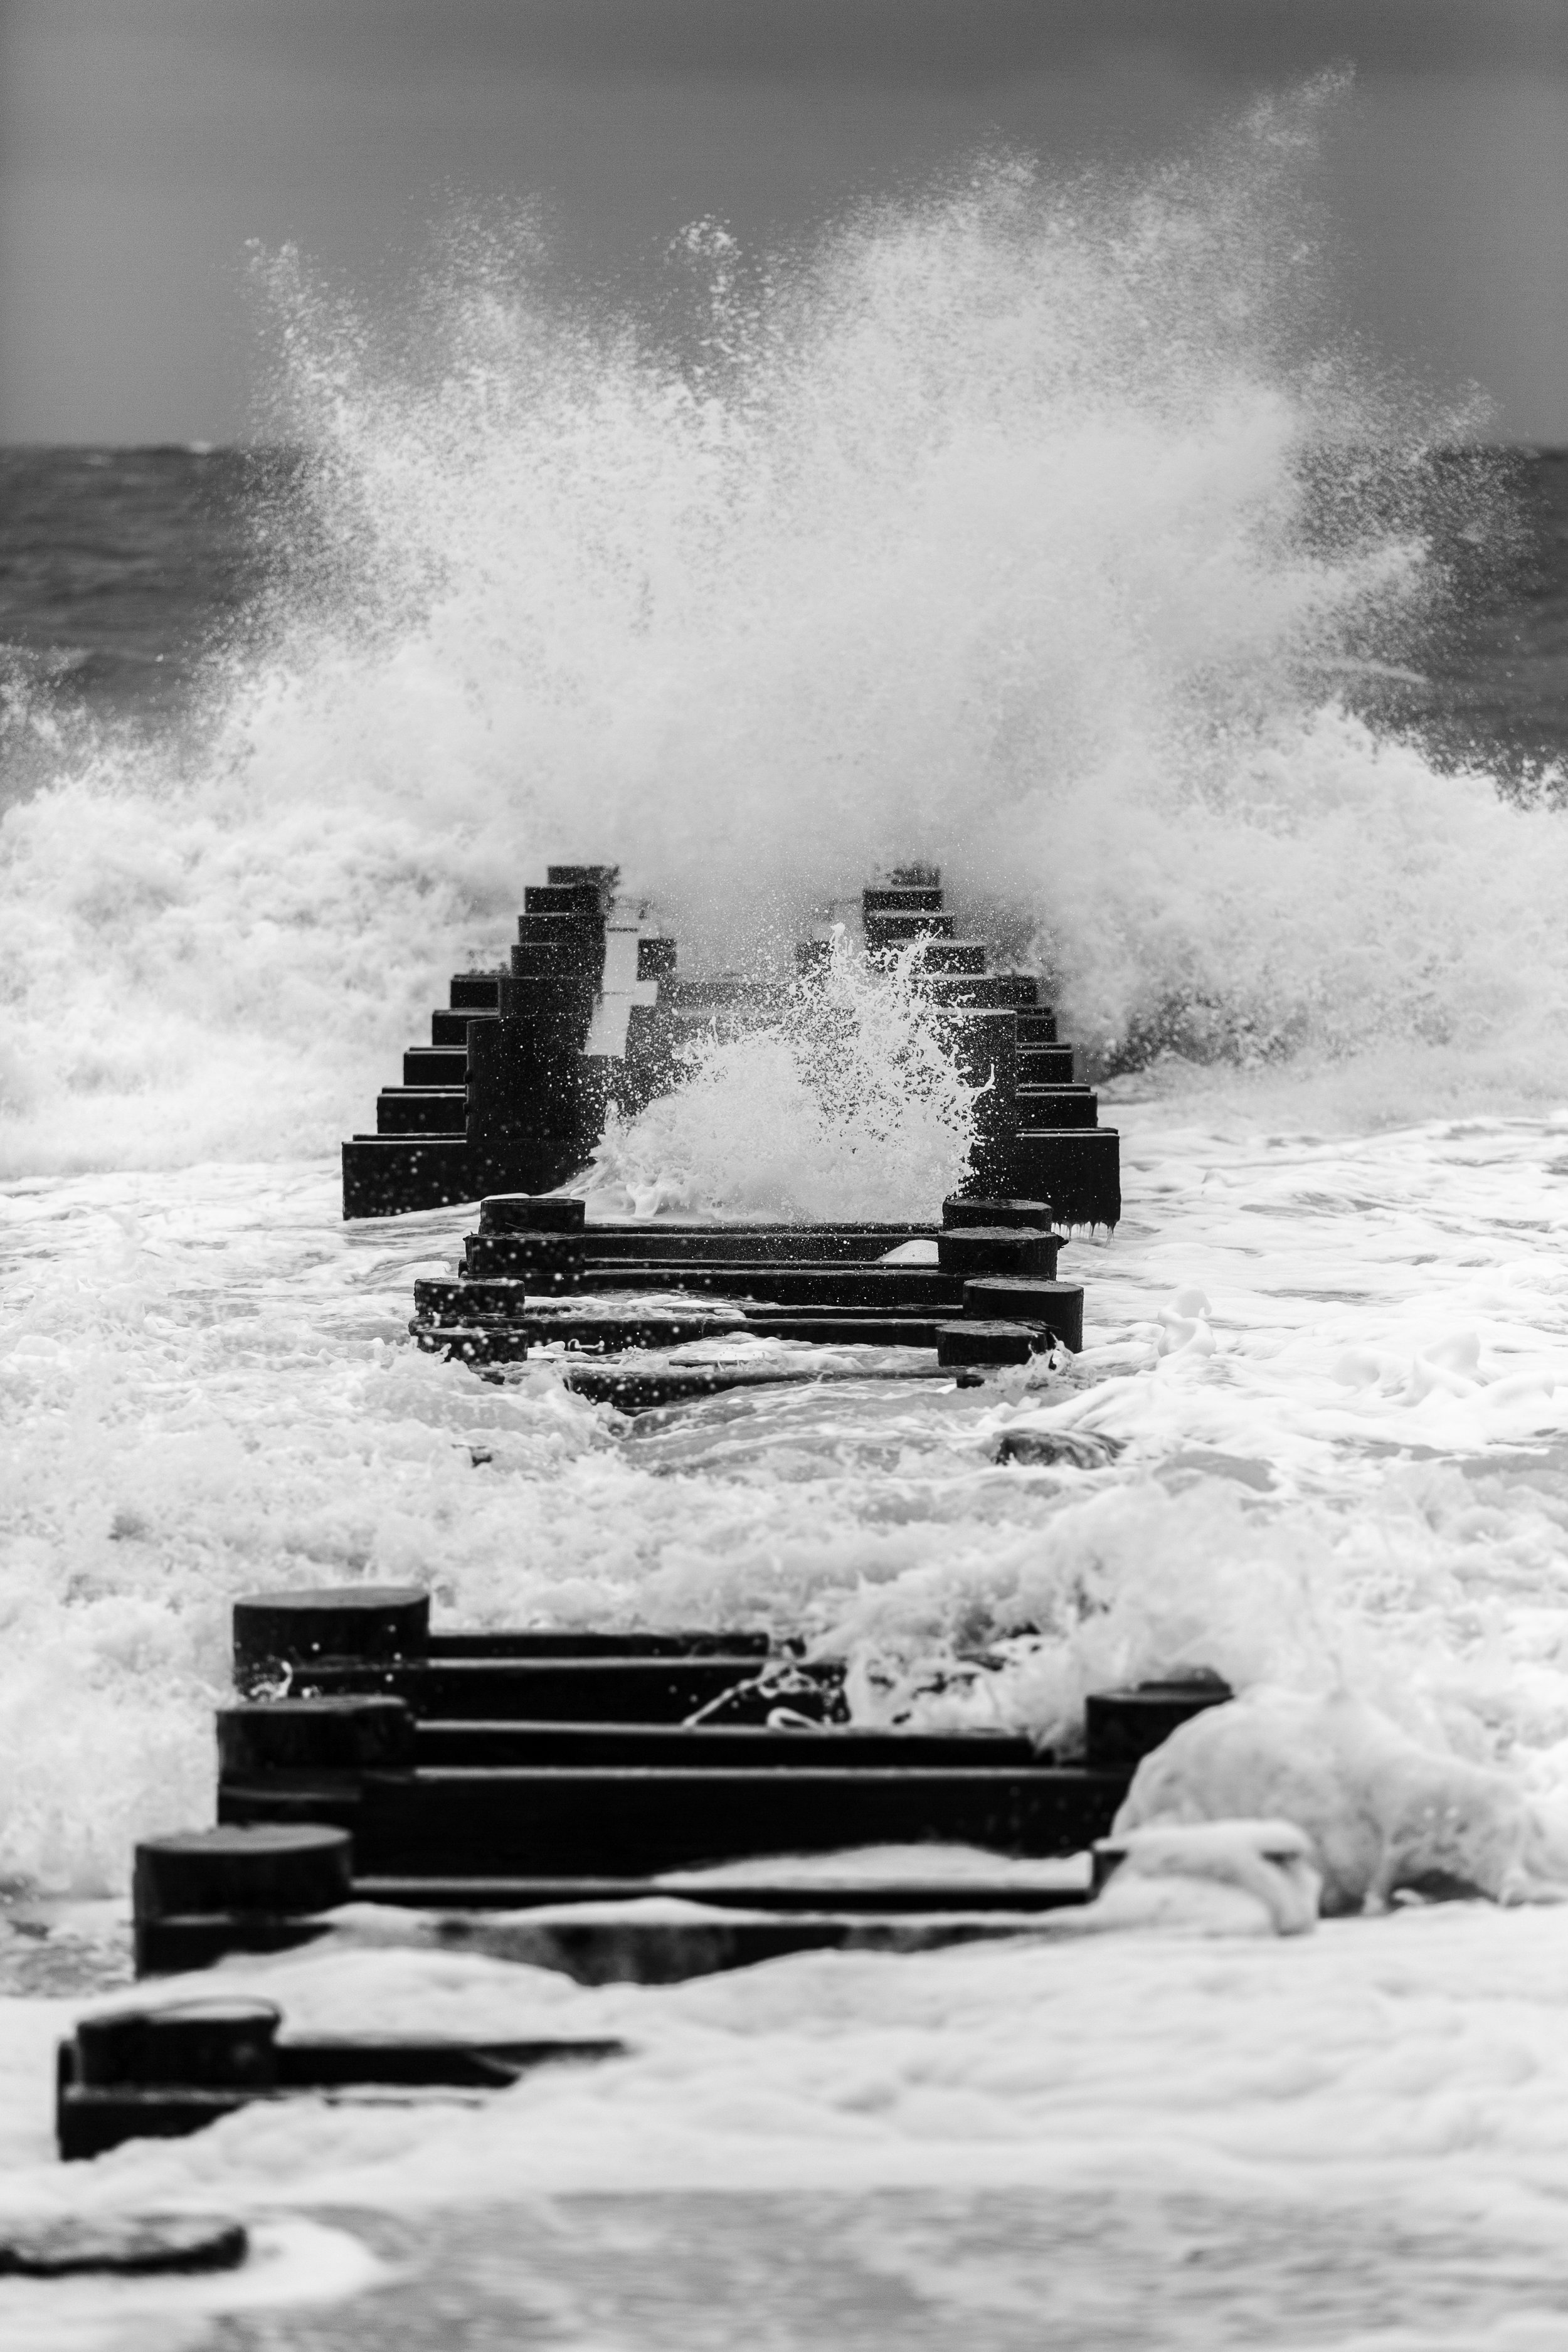 Waves crashing along one of the Jetties